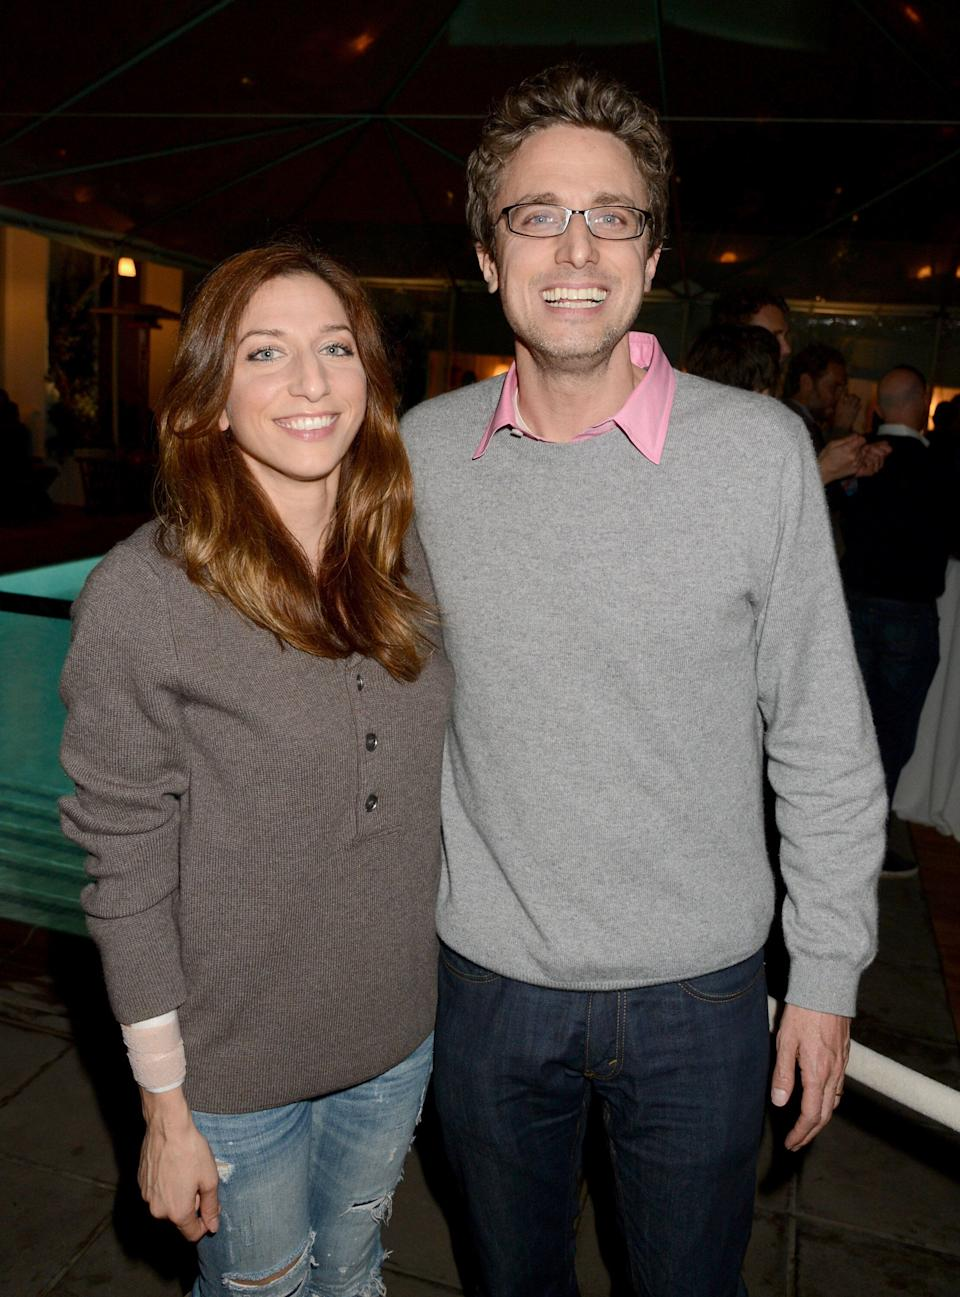 "Comedian <a href=""https://www.huffpost.com/topic/chelsea-peretti"" target=""_blank"" rel=""noopener noreferrer"">Chelsea Peretti</a>'s brother is BuzzFeed CEO and founder <a href=""https://www.huffpost.com/topic/jonah-peretti"" target=""_blank"" rel=""noopener noreferrer"">Jonah Peretti.</a>"